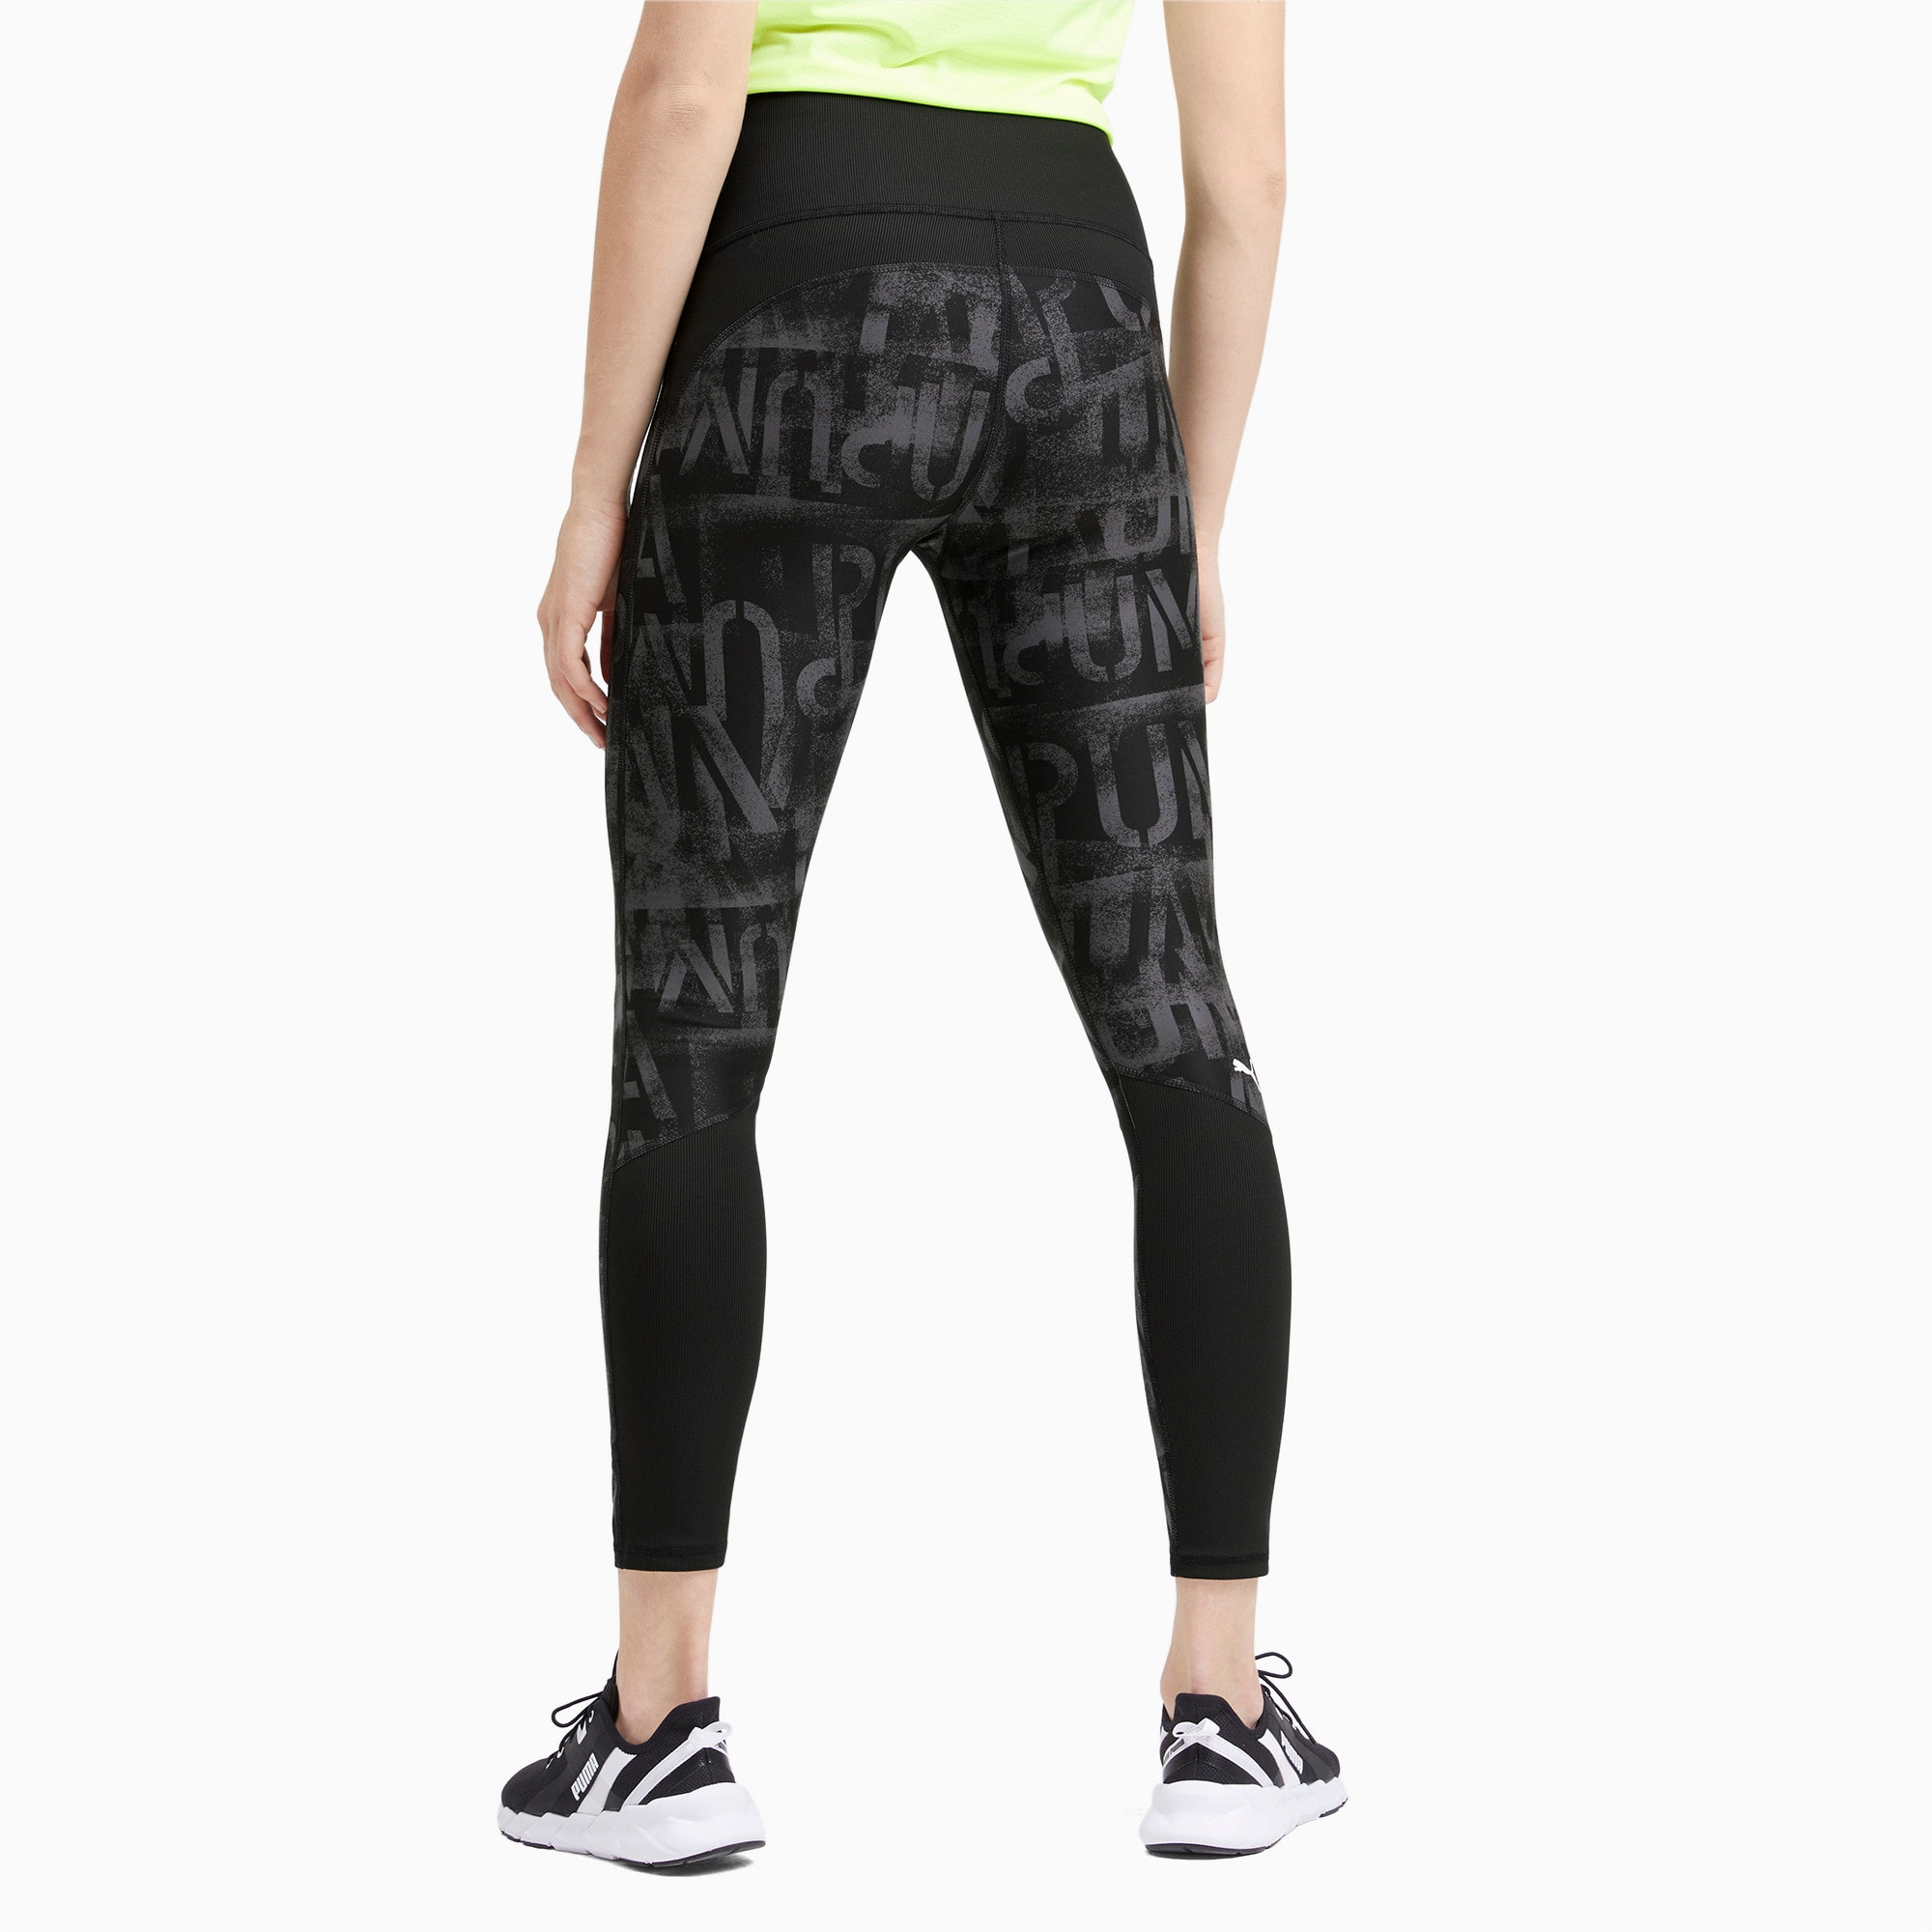 Thumbnail 2 of Studio 7/8 Graphic Women's Tights, Puma Black, medium